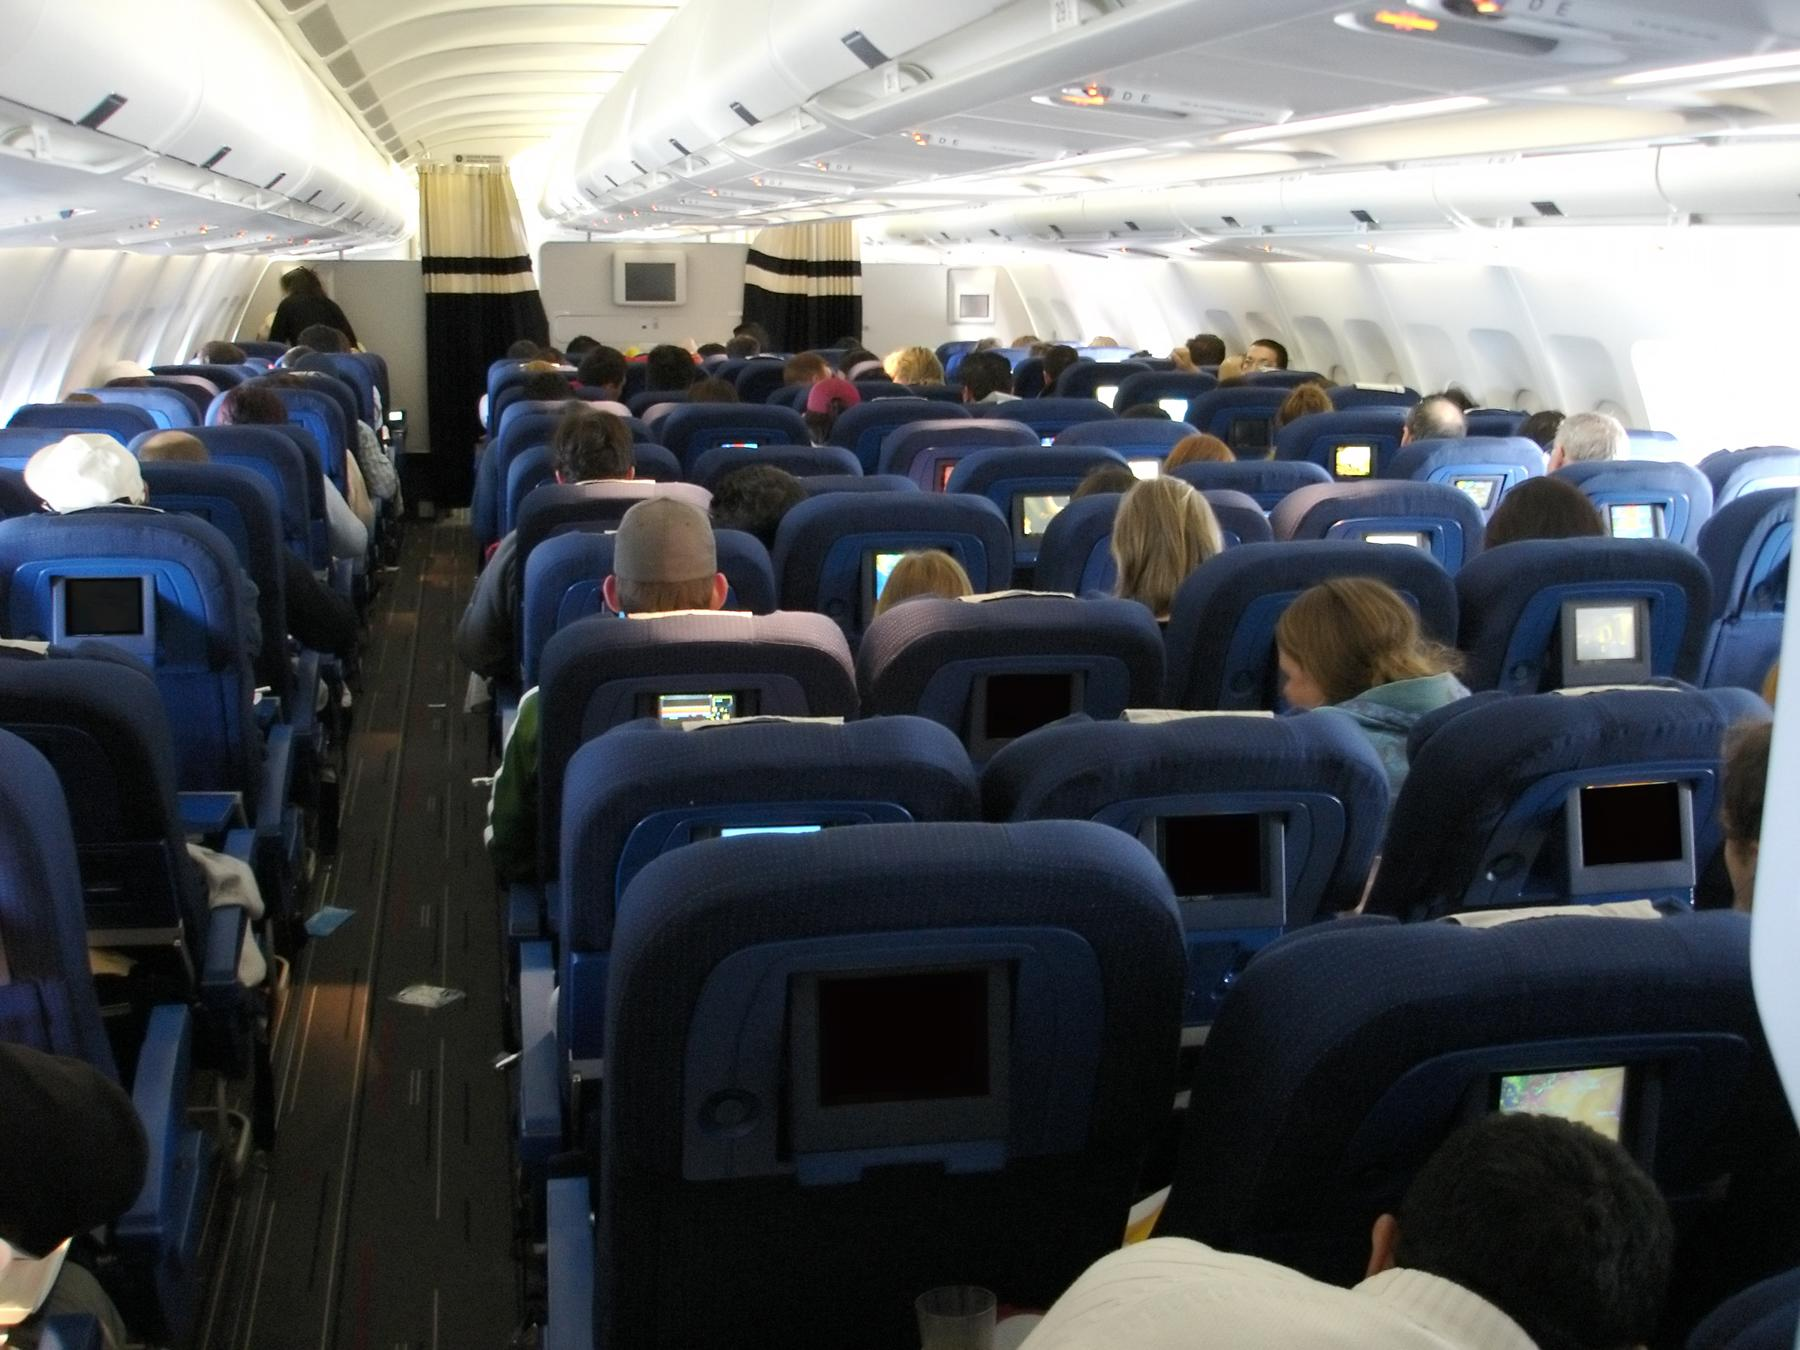 Haitian sentenced to pay more than $7,000 over plane seat row